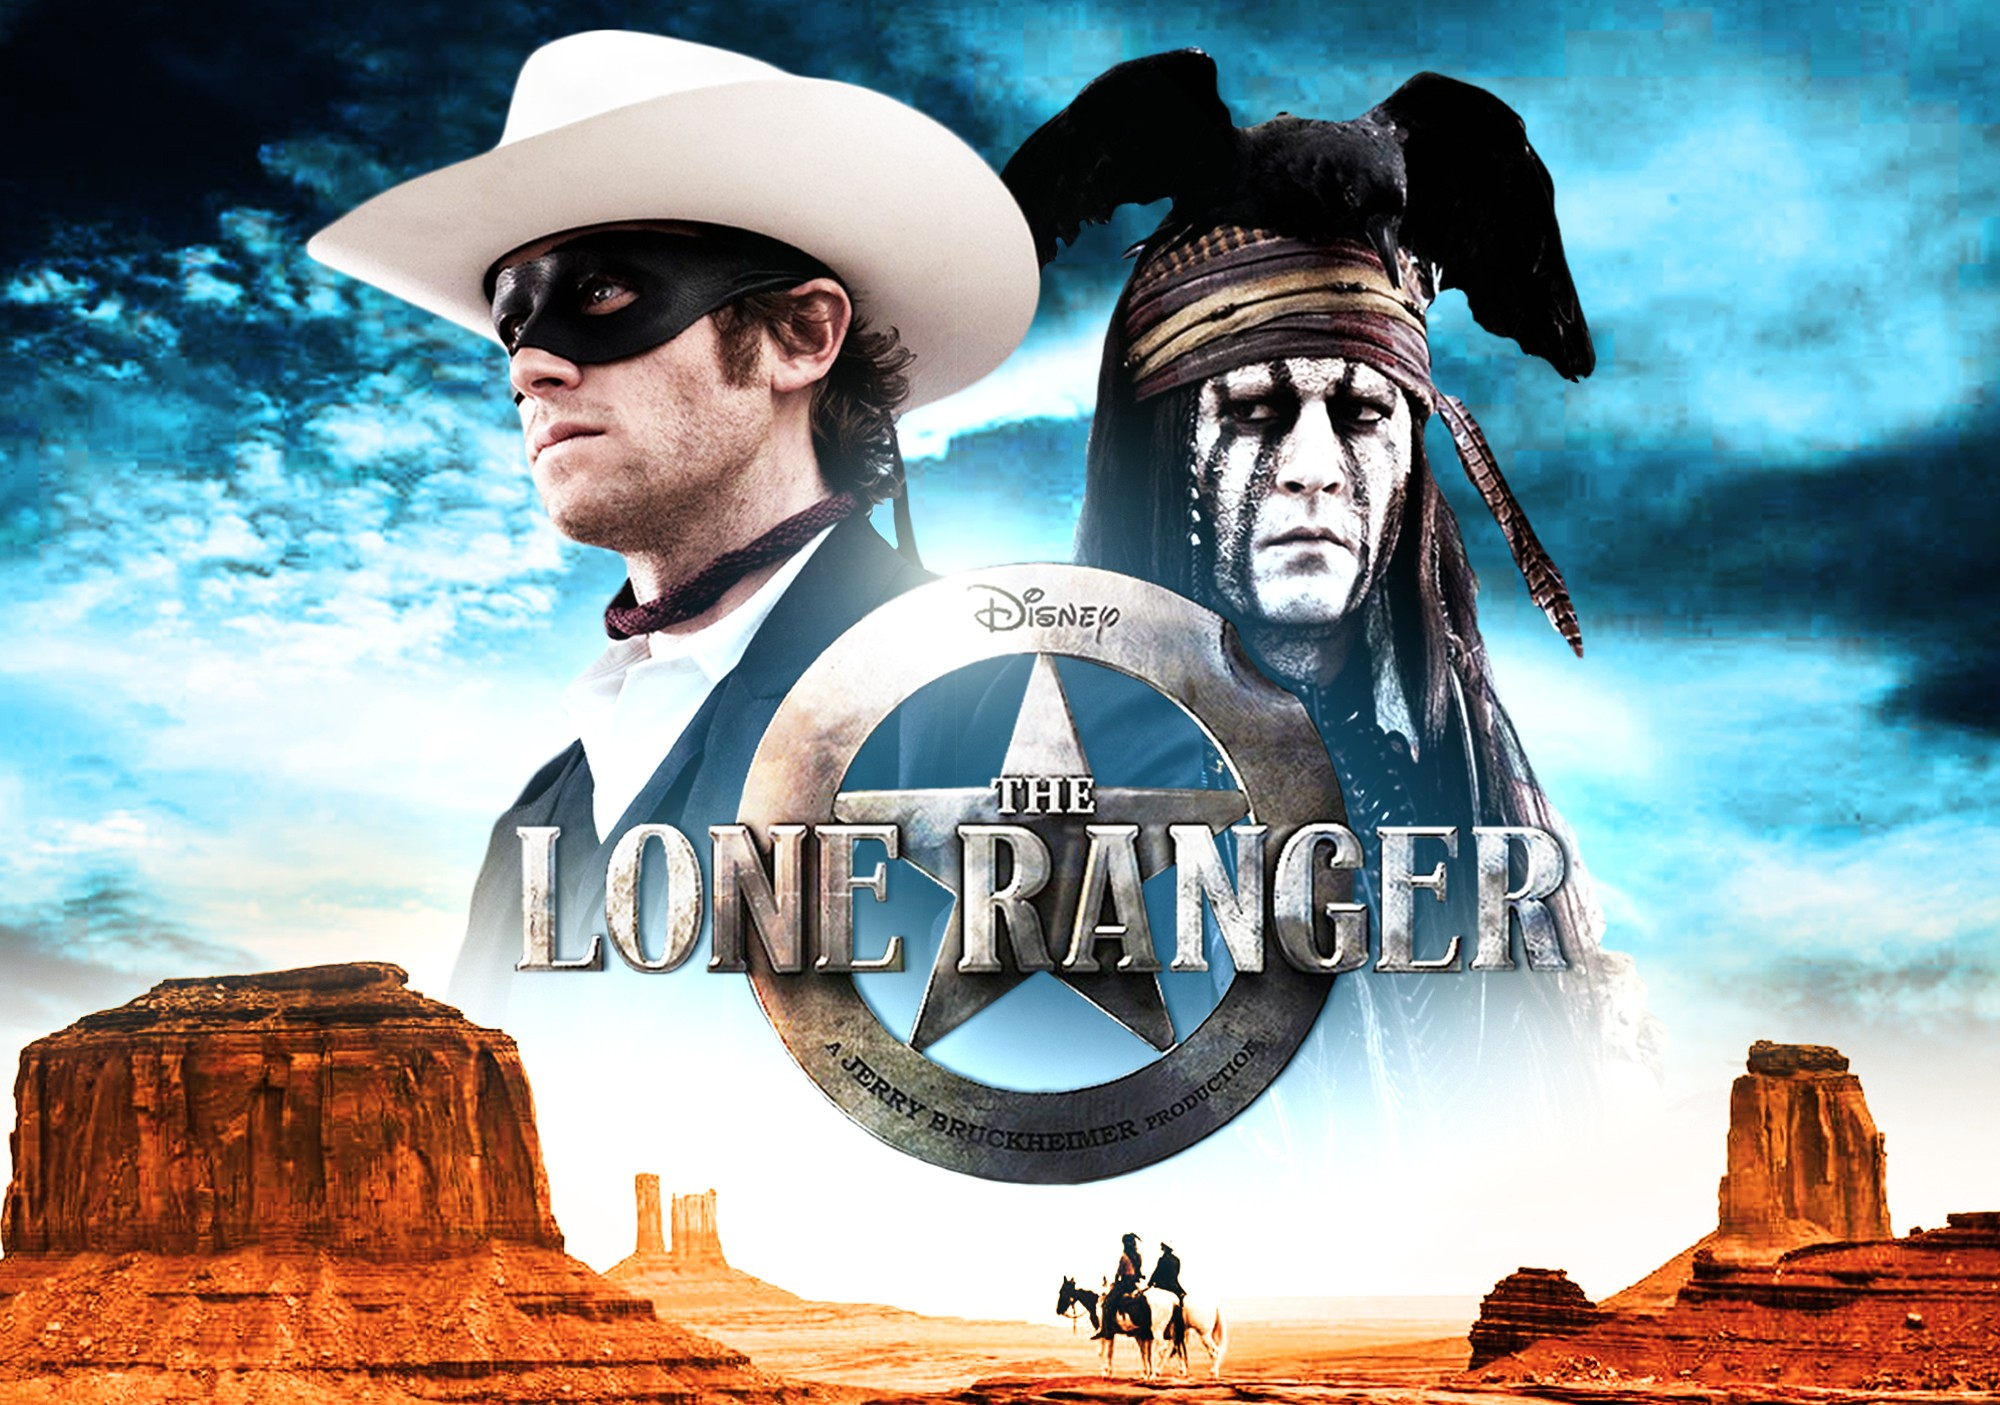 Images of The Lone Ranger | 2000x1405